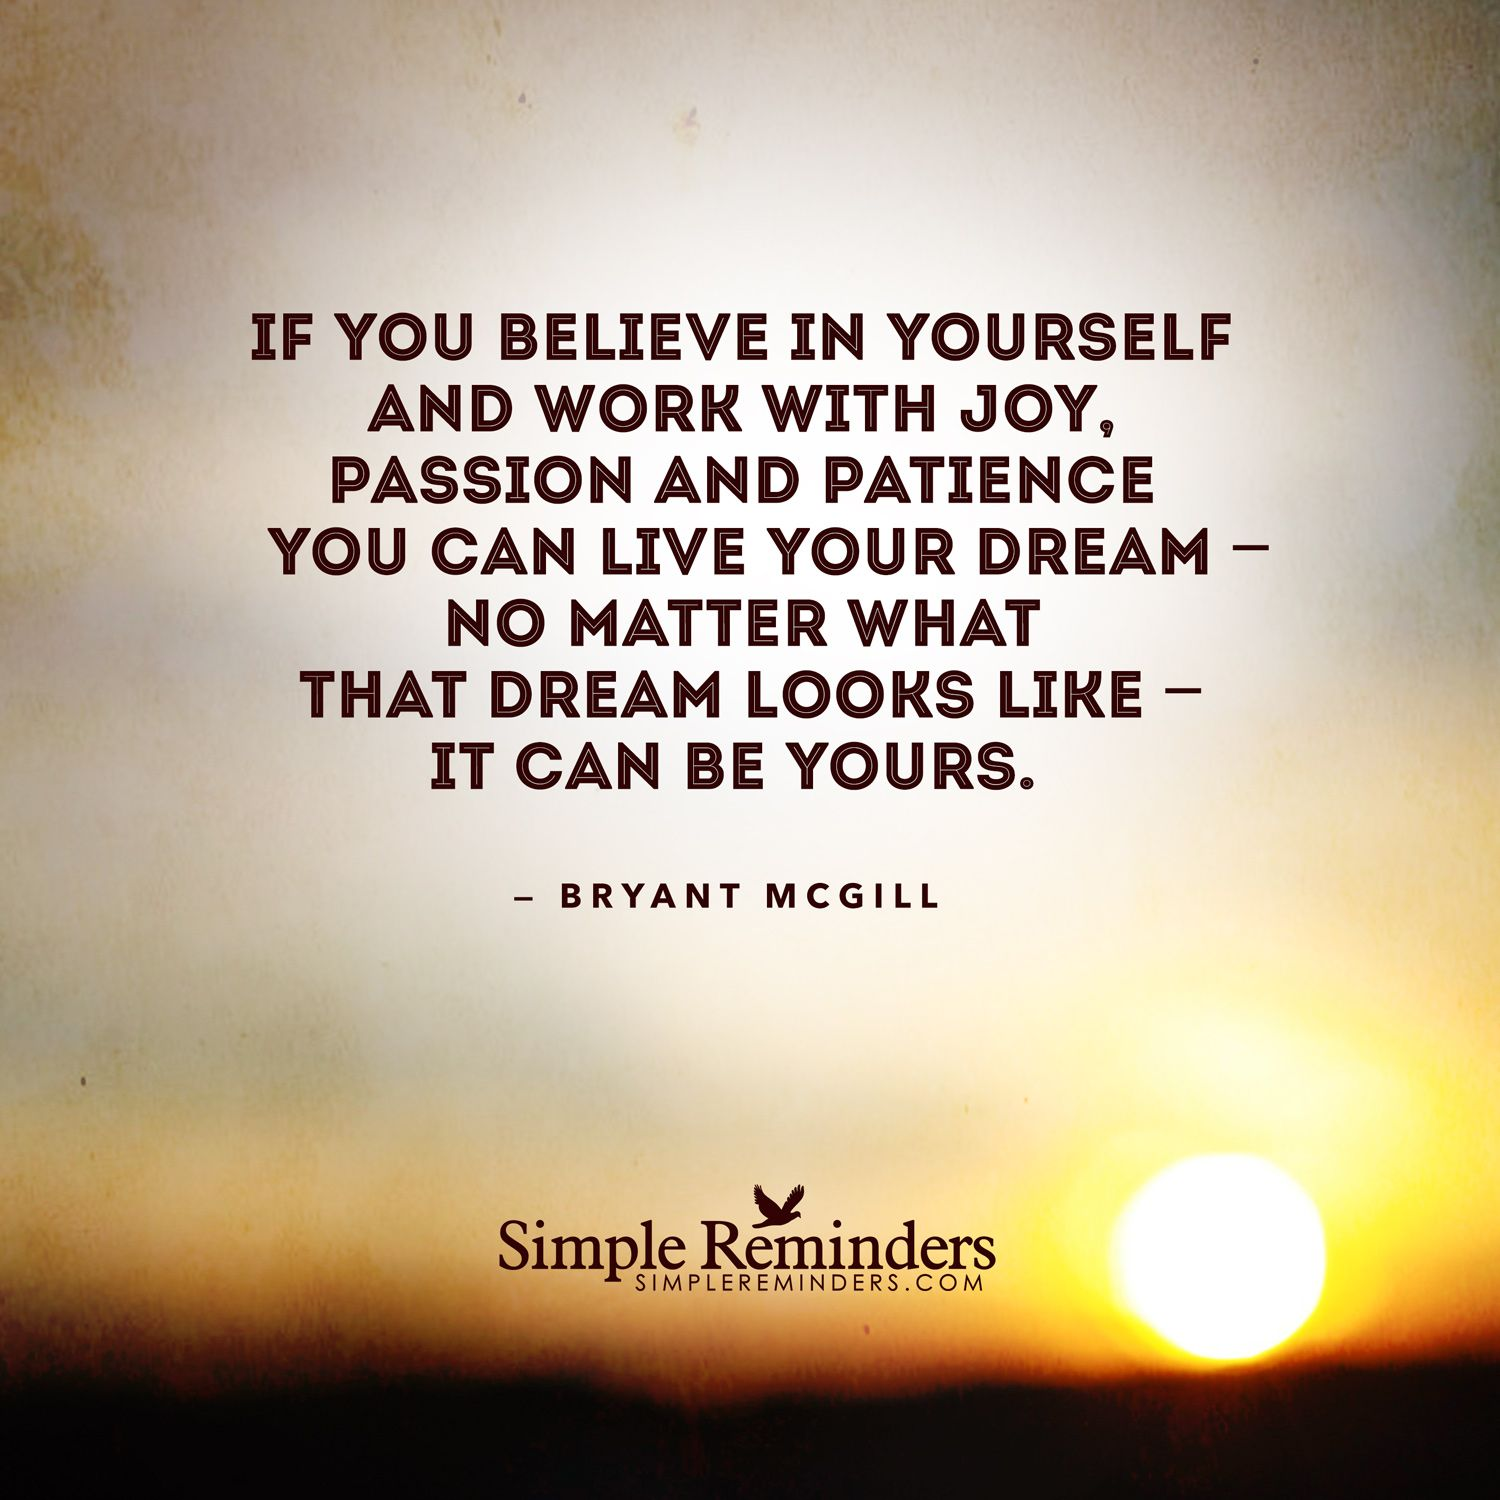 If You Believe In Yourself And Work With Joy Passion And